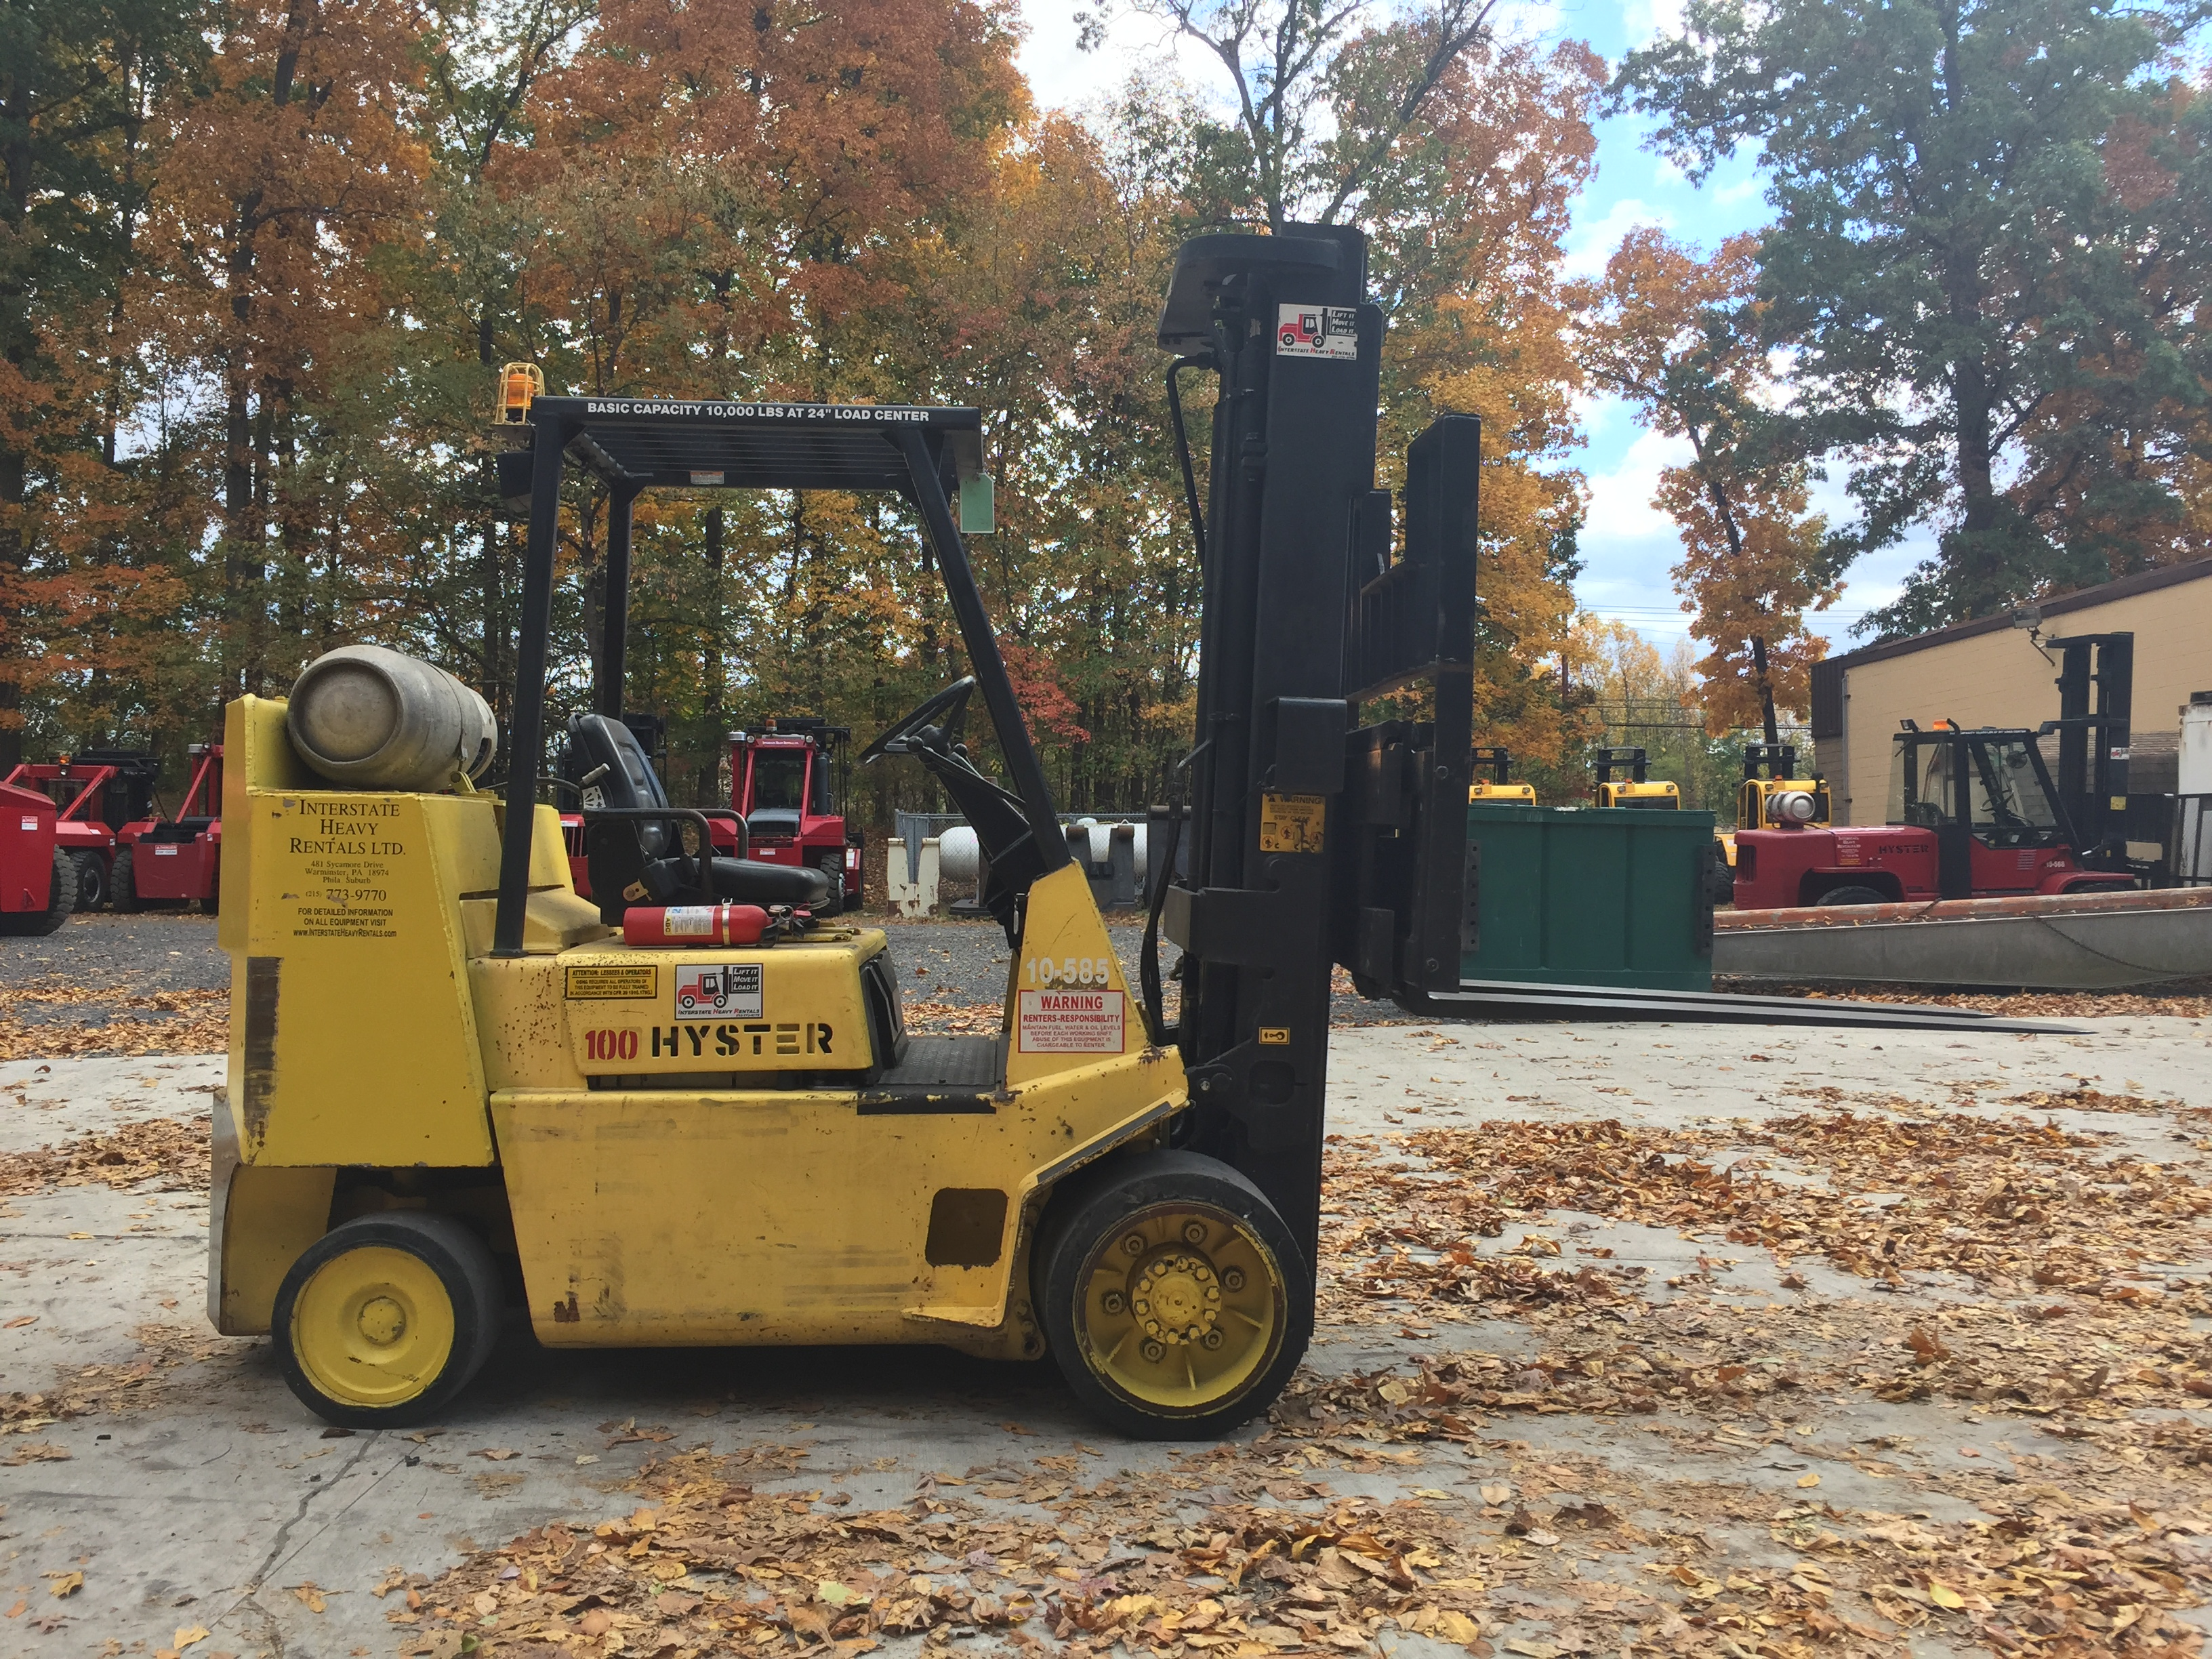 Hyster e80xl Forklift Manual on